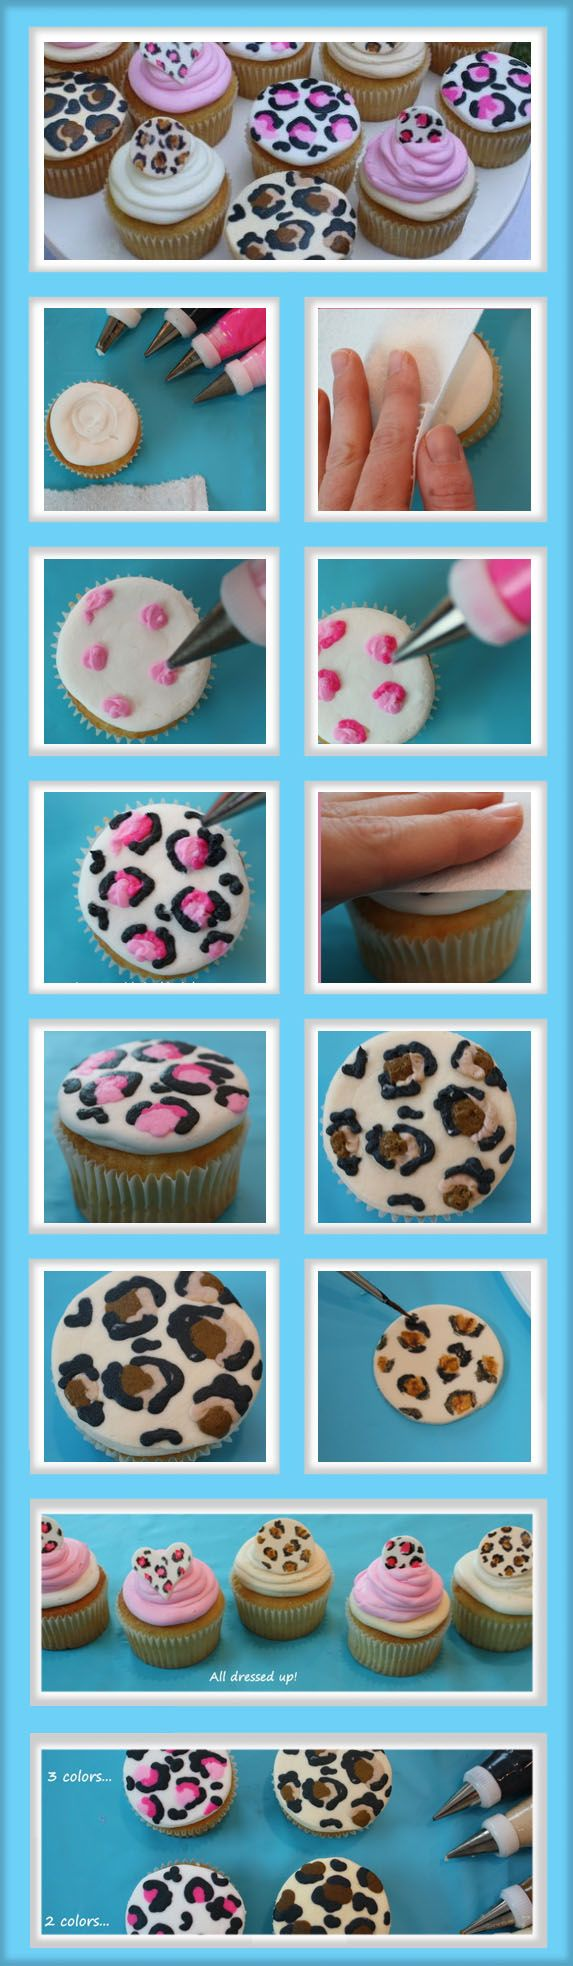 Leopard Cupcake Icing Tutorial ~ Great Site!